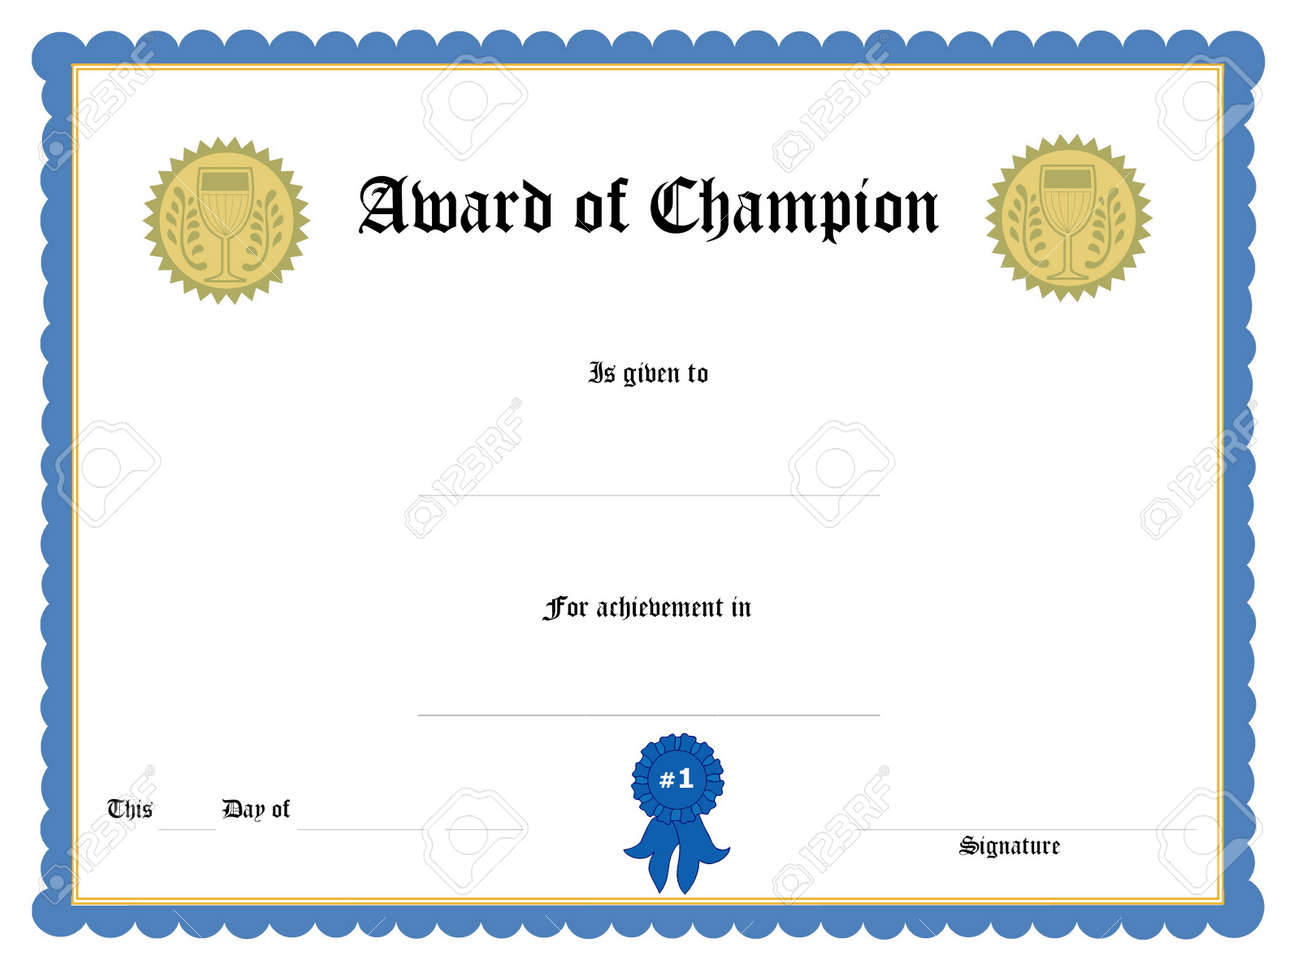 Blank Award Certificate Form Photo Picture And Royalty Free – Blank Certificate Forms